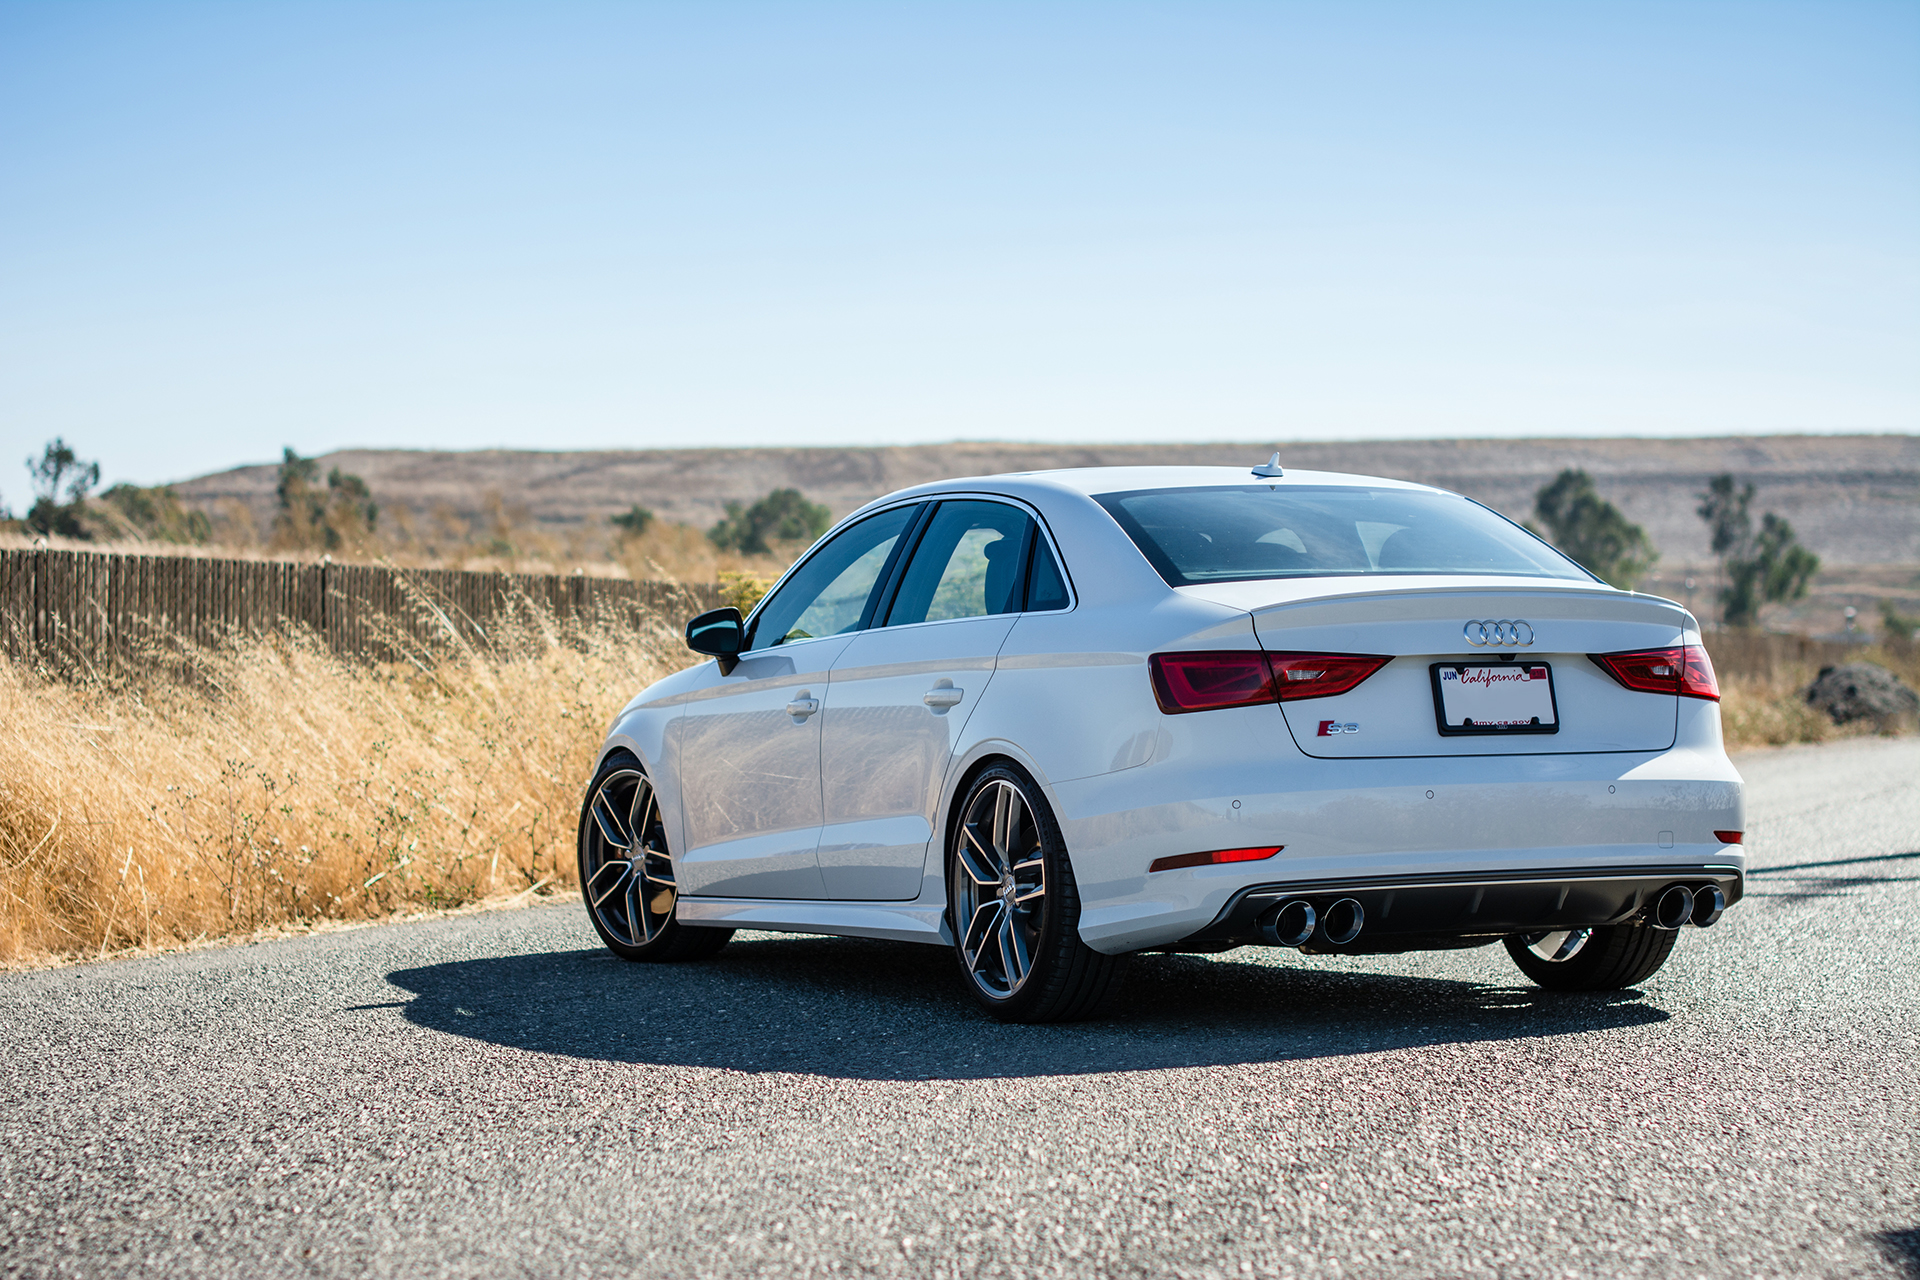 Audi S3 Suspension Upgrades: Featuring AWE Tuning SwitchPath Performance Exhaust System